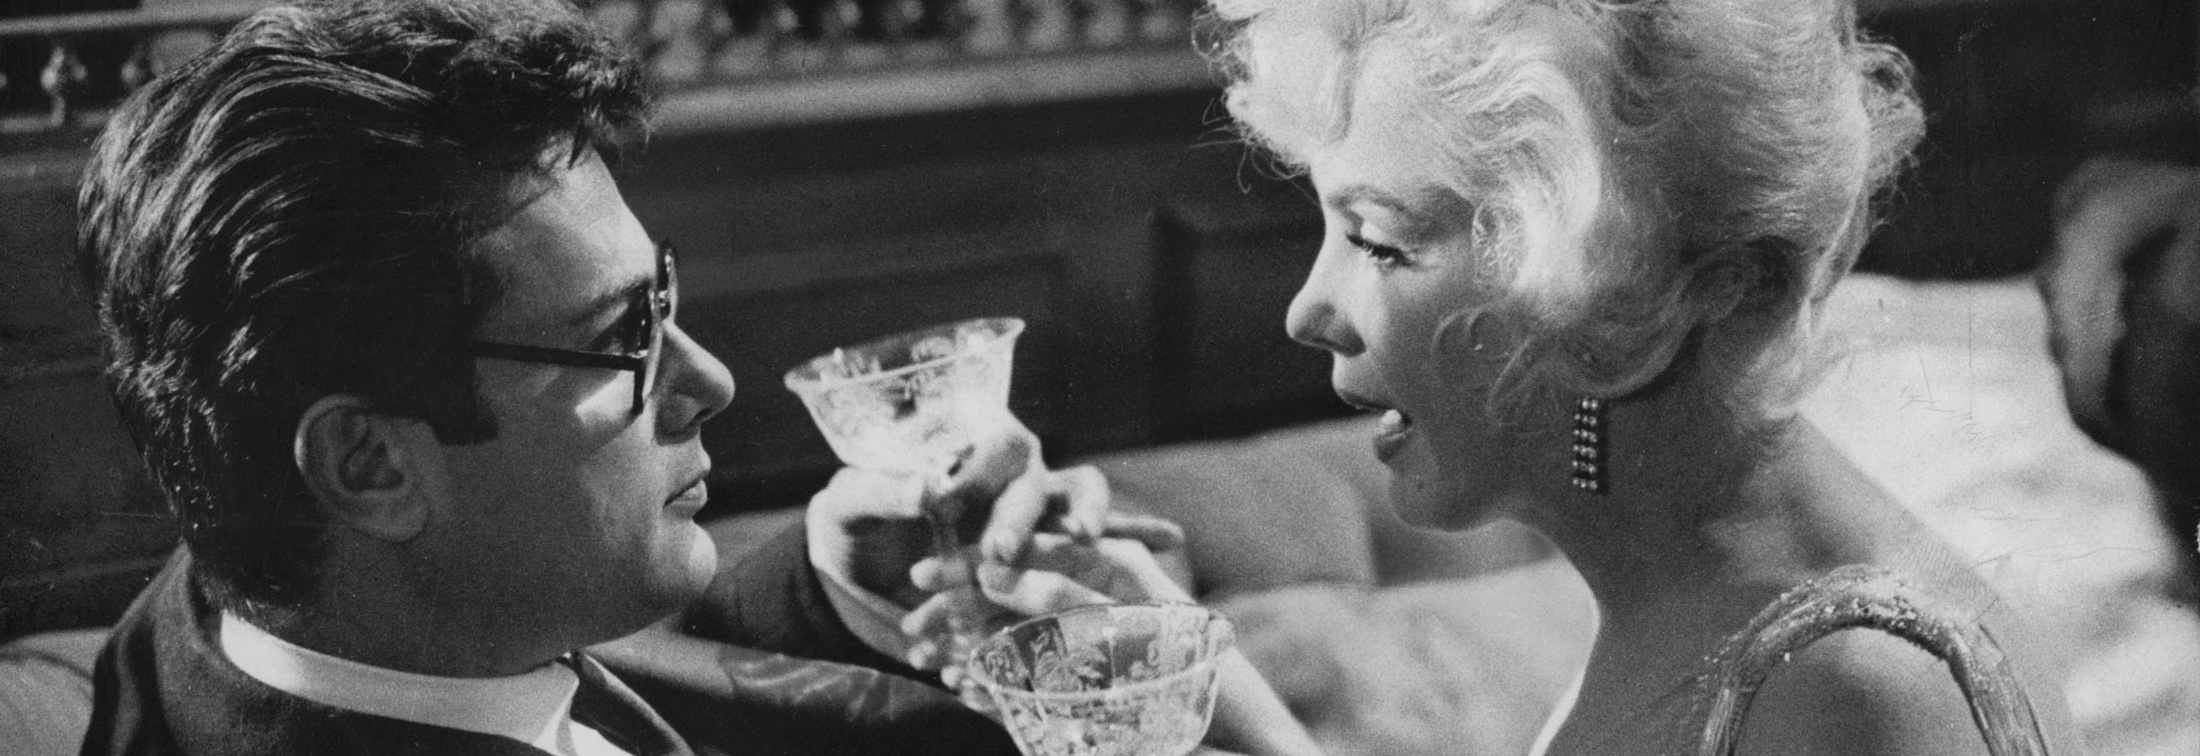 Some Like It Hot - A virgin's review for the 60th anniversary